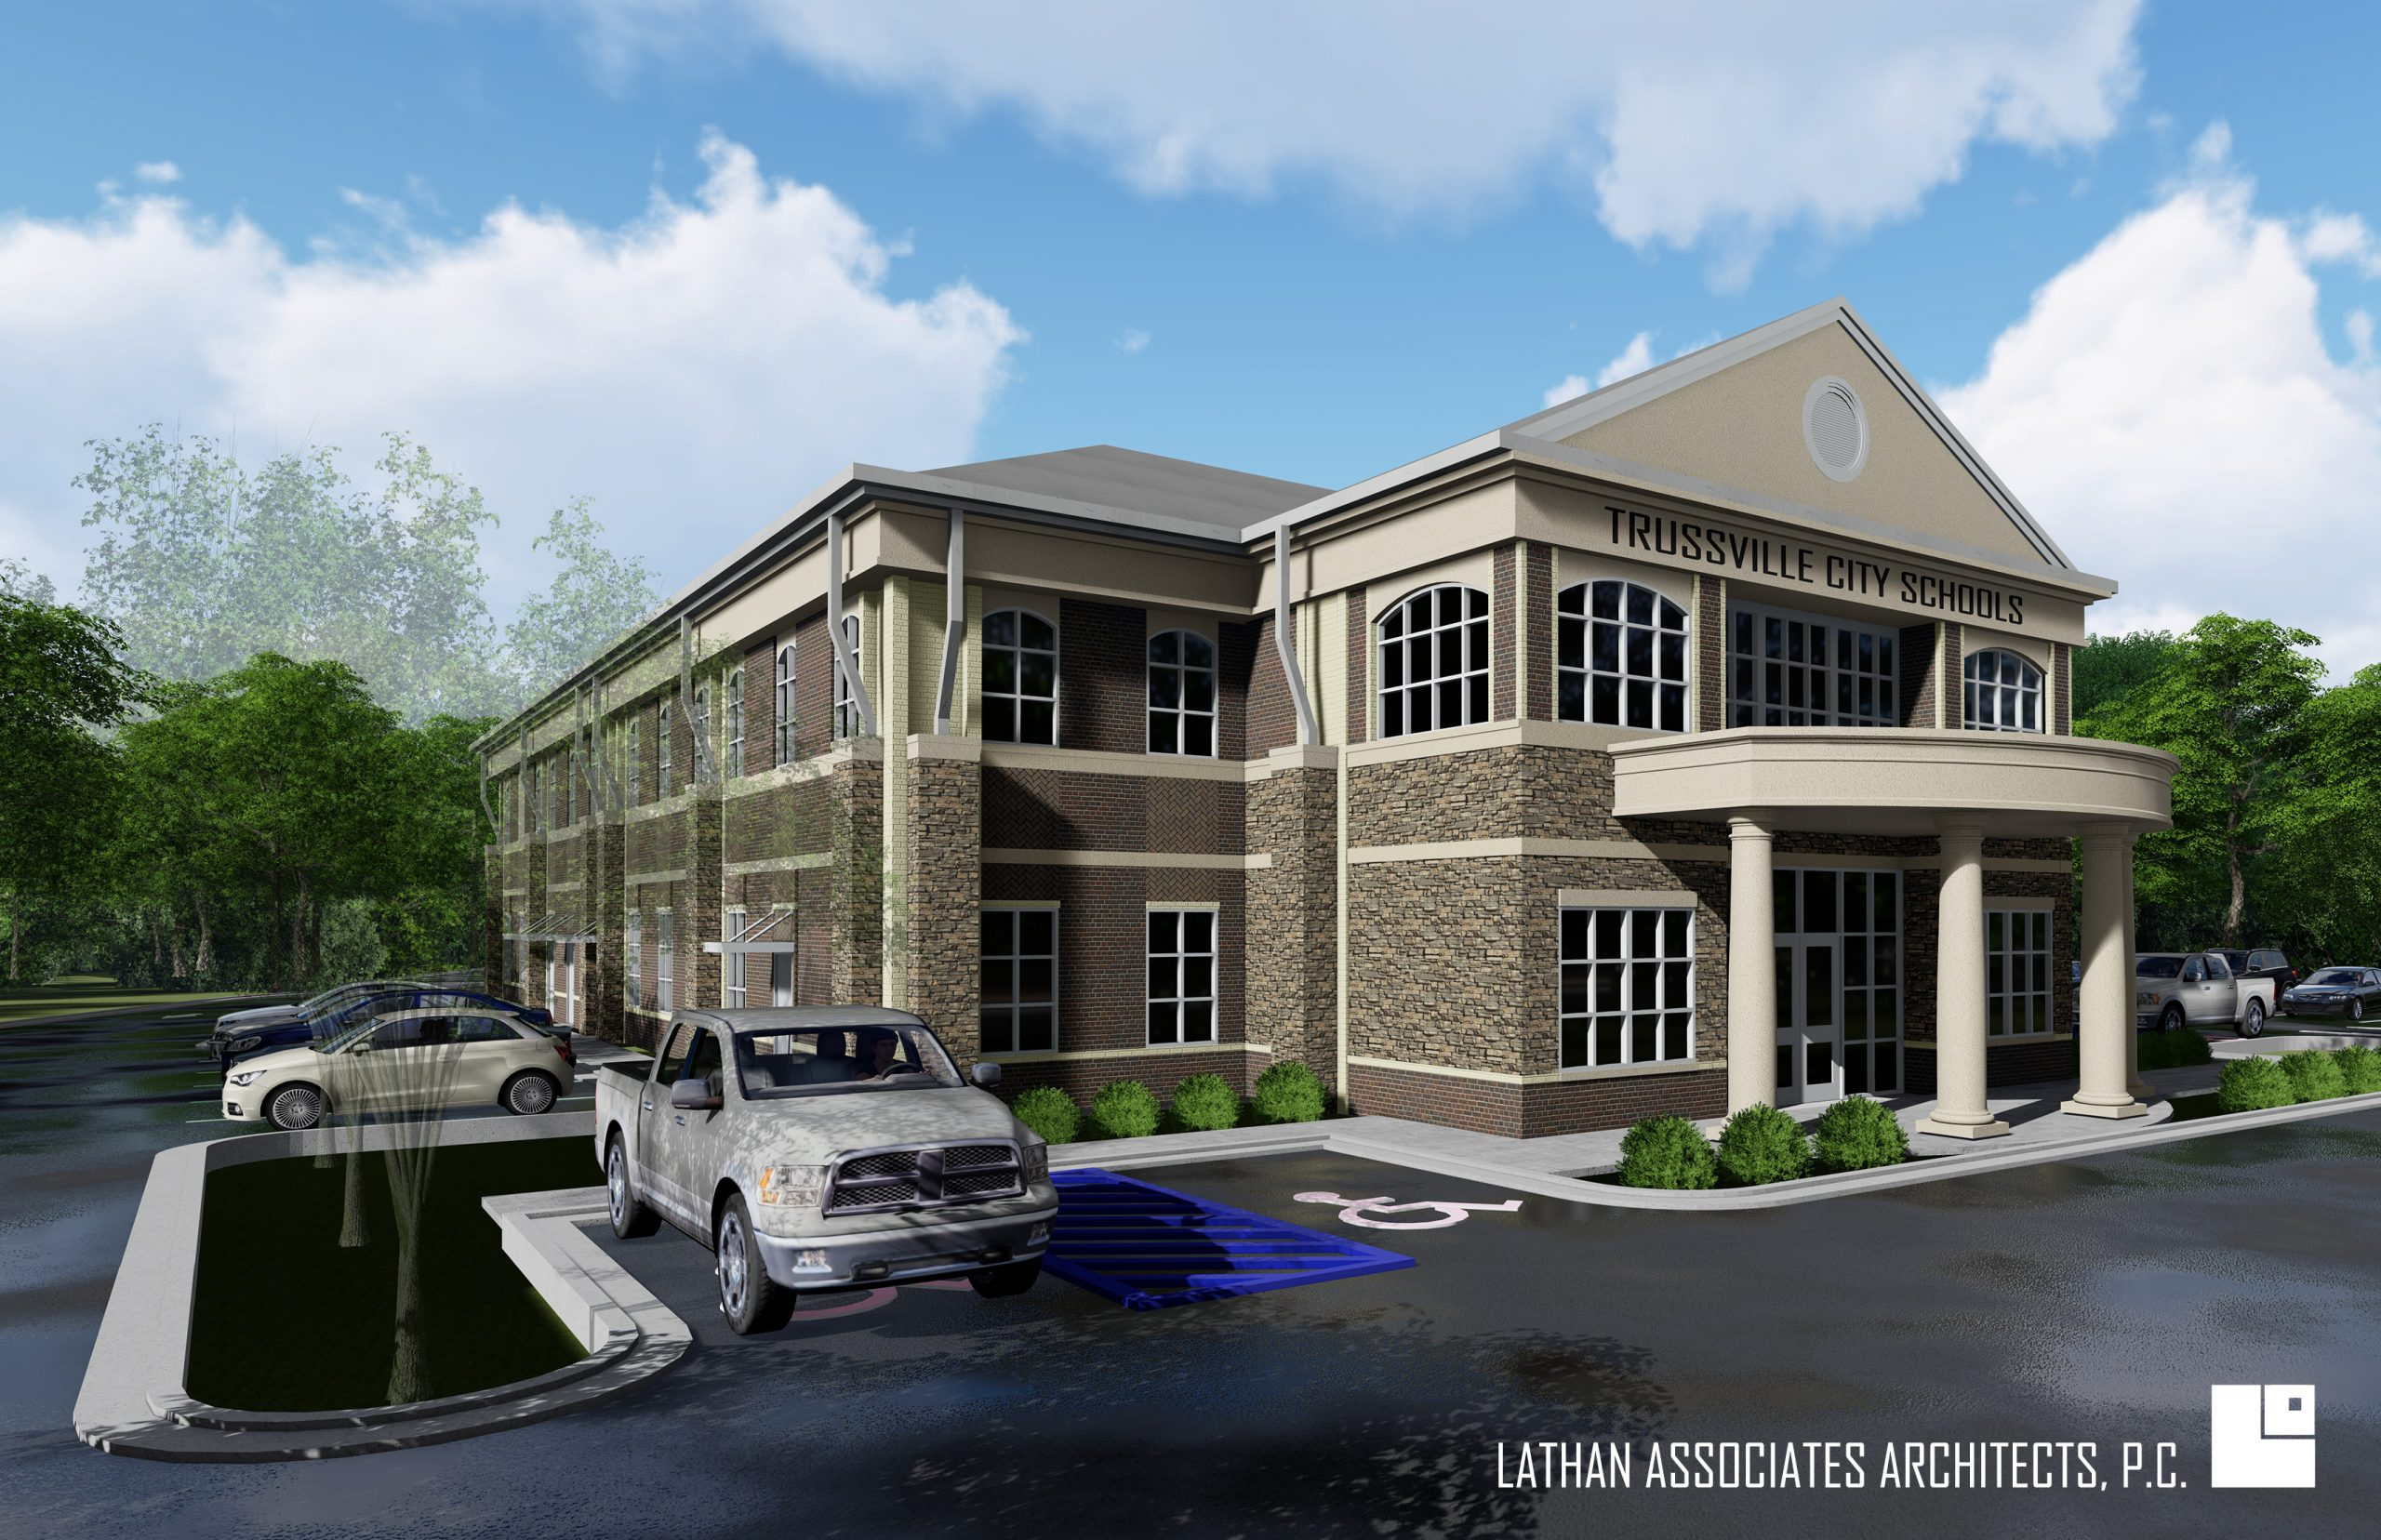 Trussville City Schools plans to use state money to build new central office